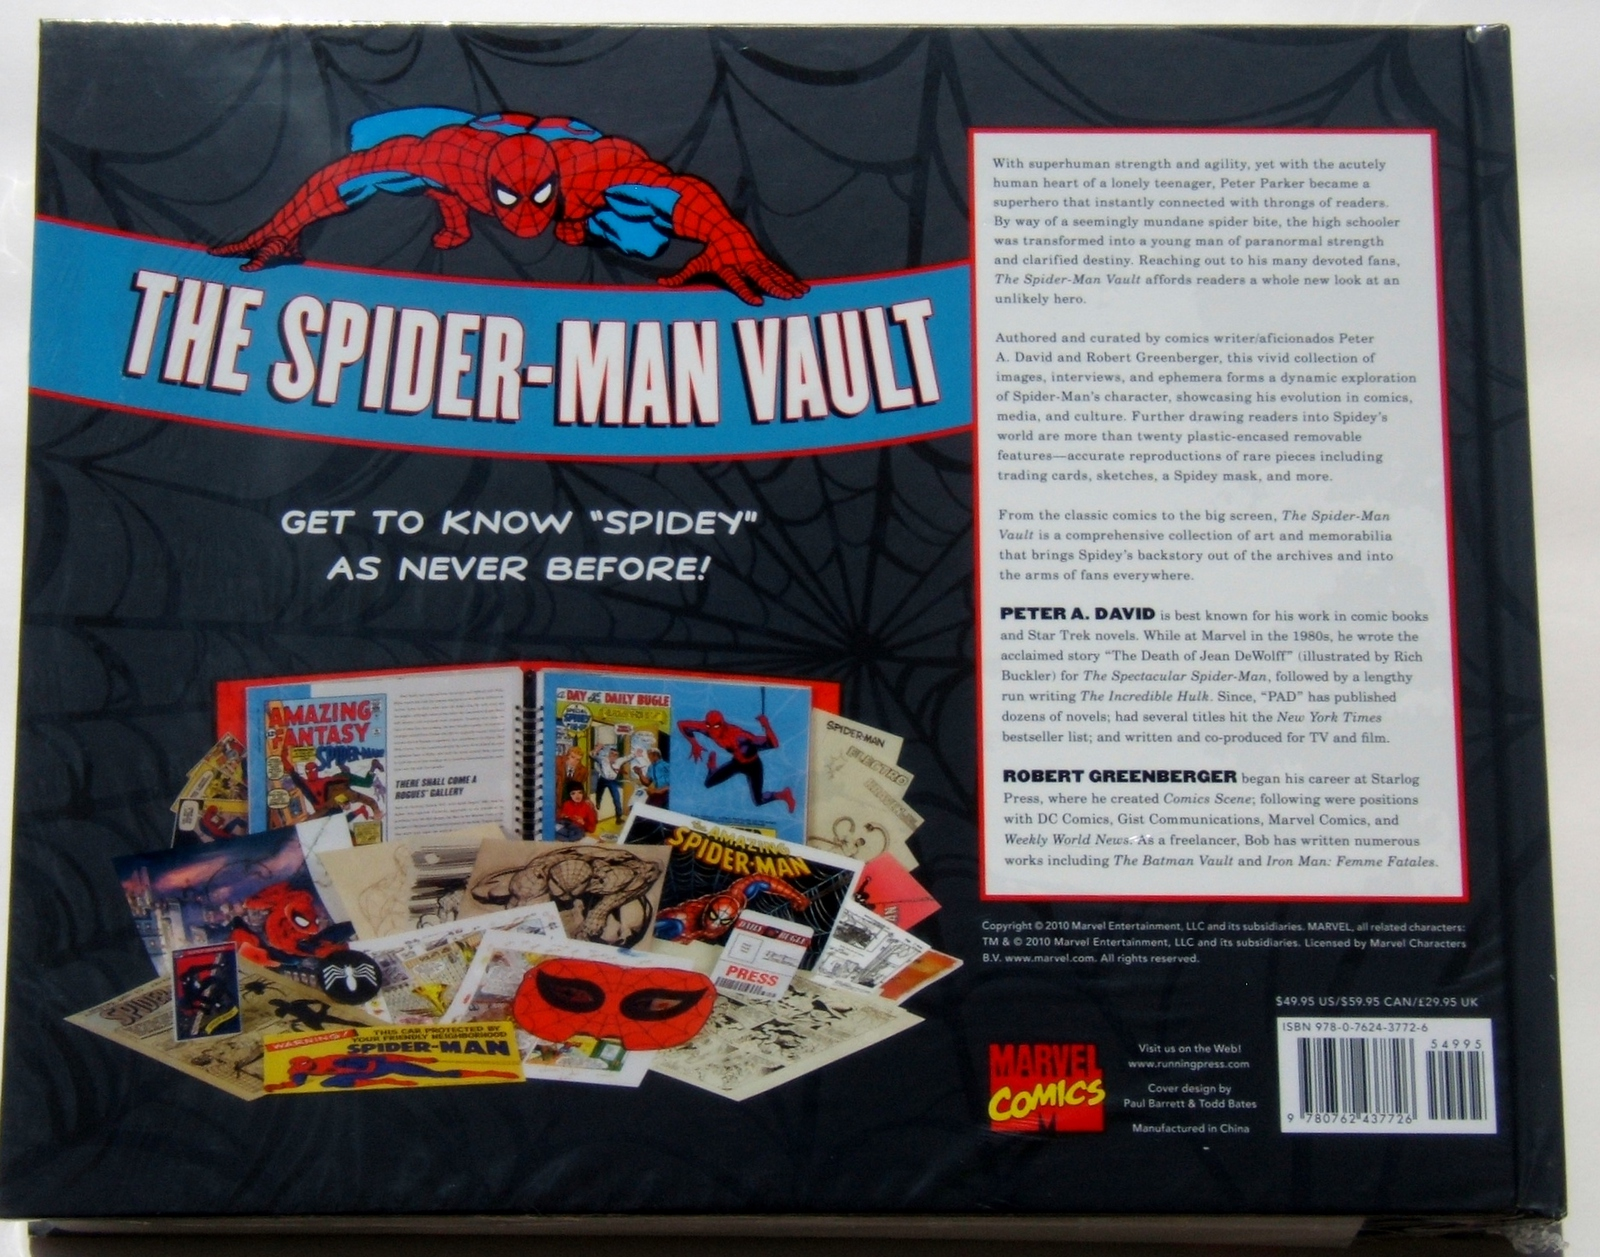 The Spider-Man Vault Museum In A Book w/Rare Collectibles Spun From Marvel